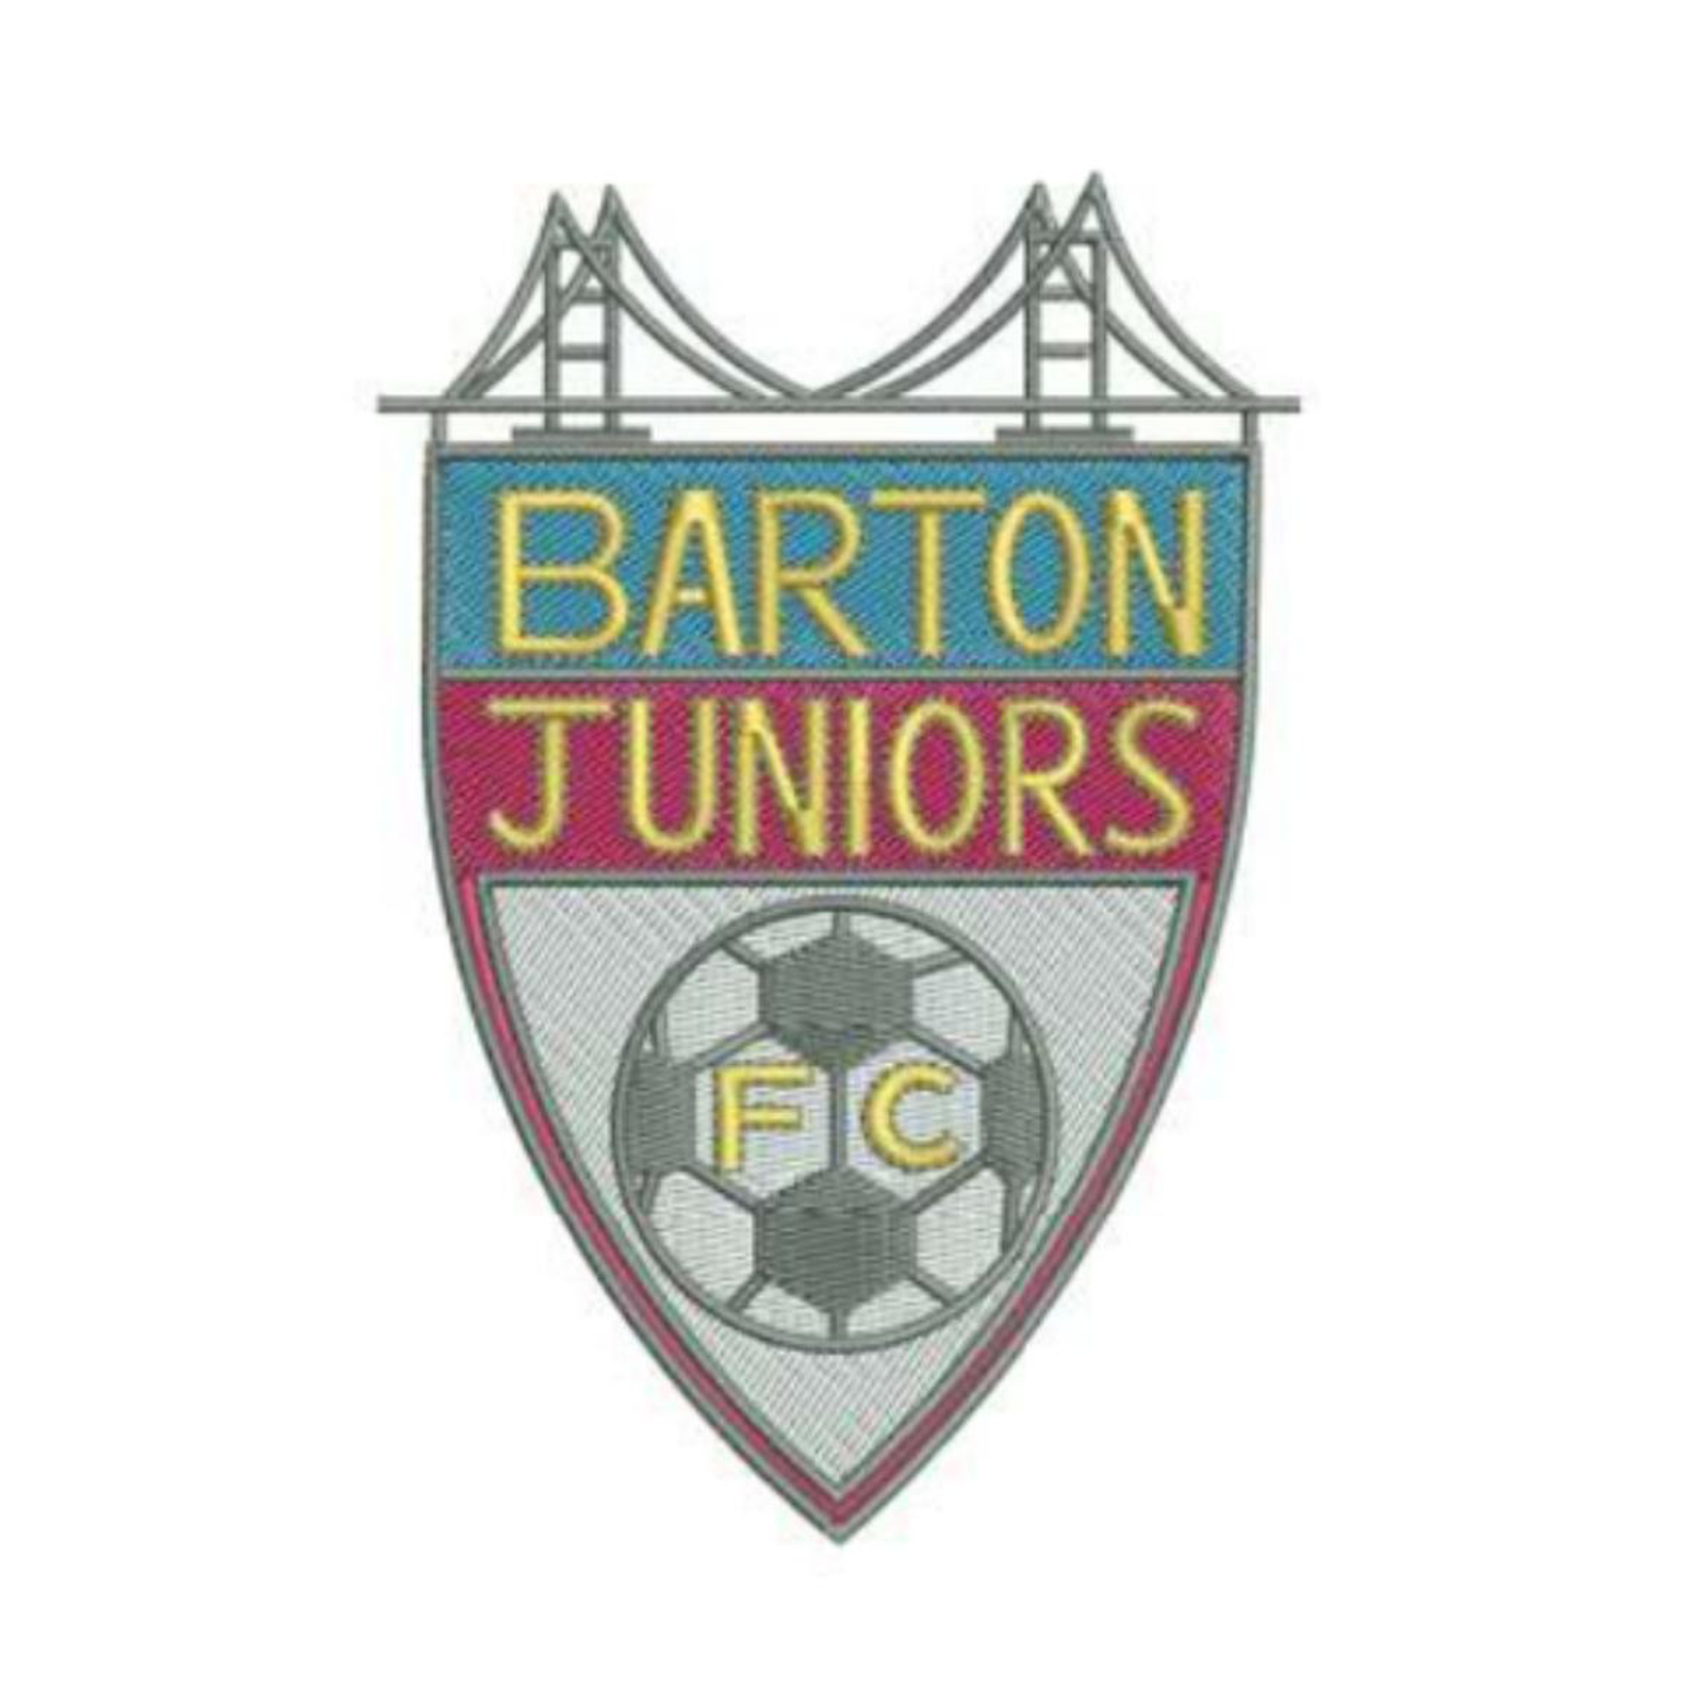 Barton Junior Football Club